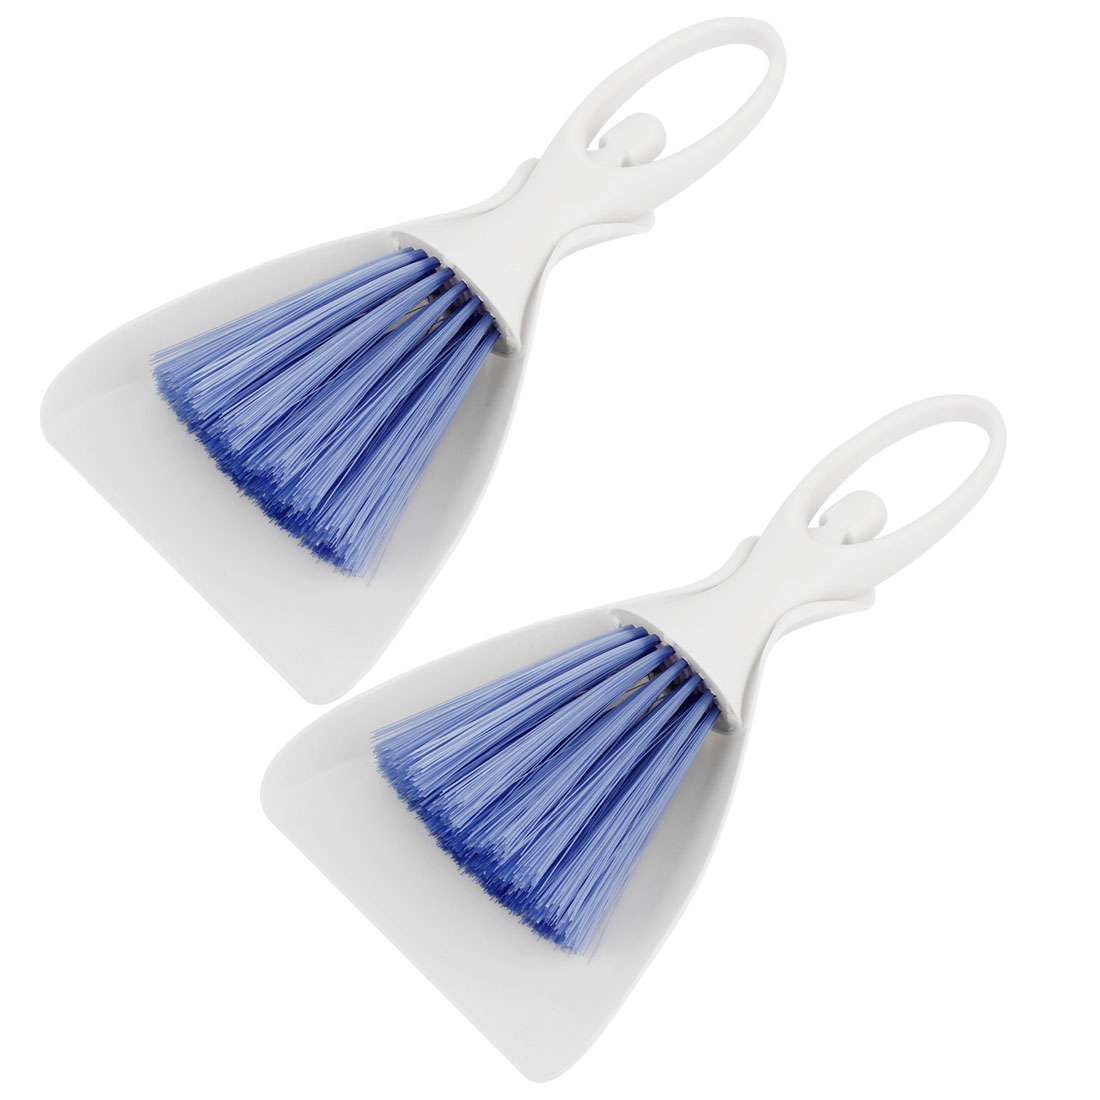 2 Sets PC Computer Keyboard Table Blue White Plastic Cleaning Brush Dustpan Kit